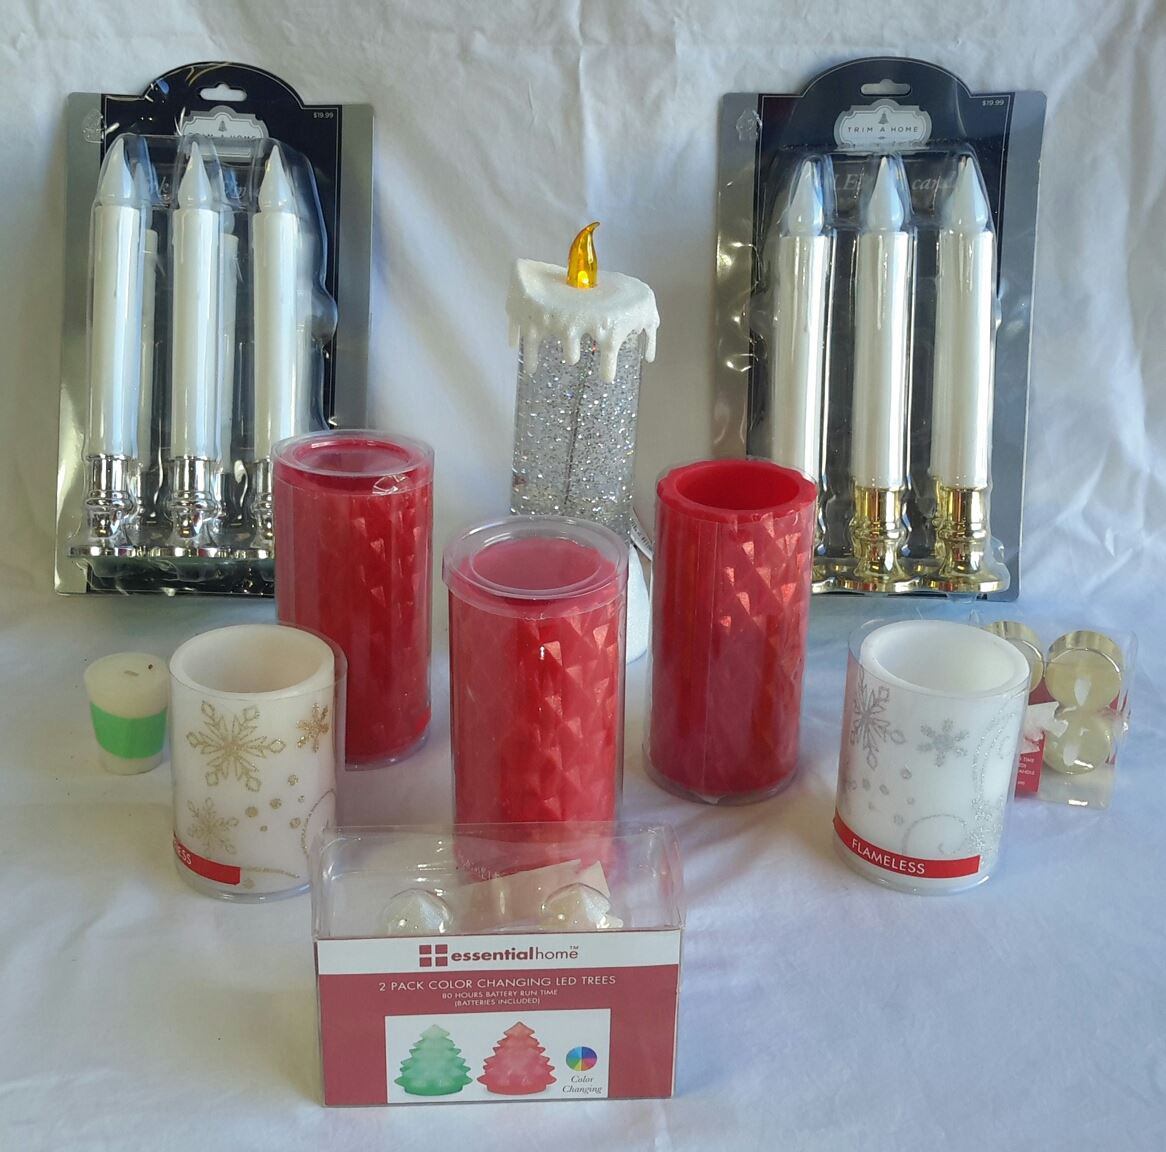 Wholesale Resale Lot of Holiday Christmas CANDLEs Mixed Styles Sizes Brand New LED